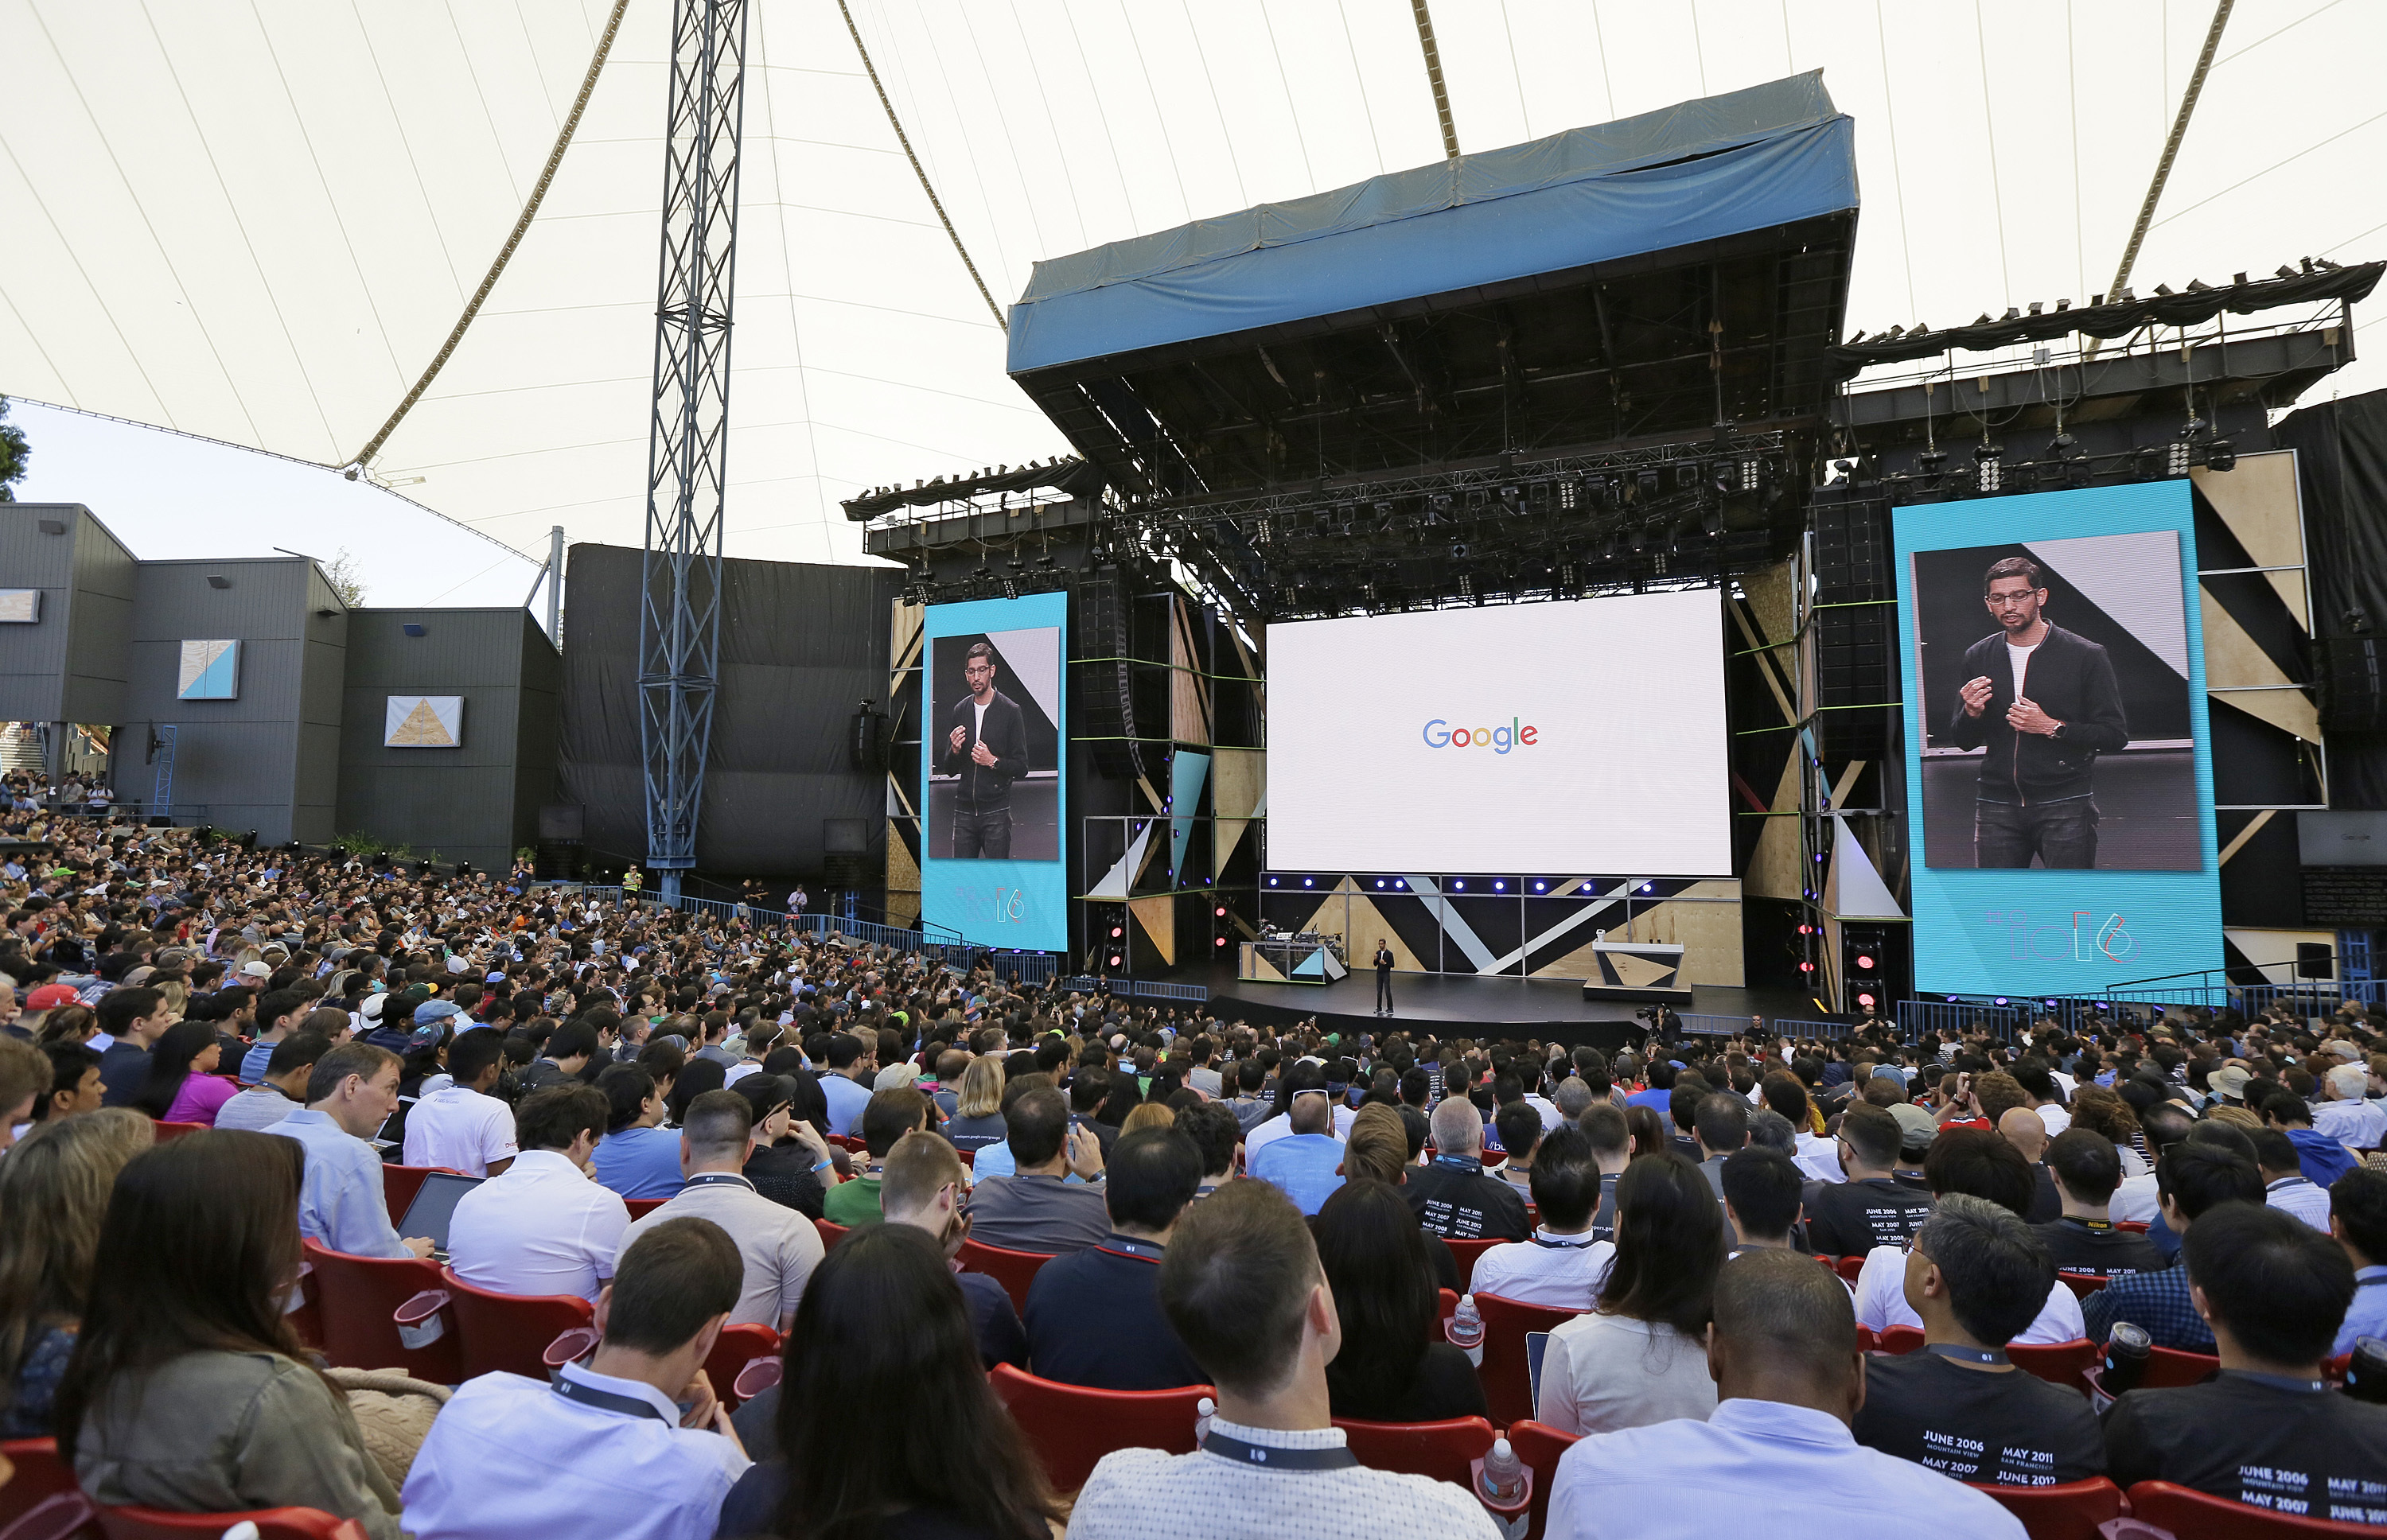 Google CEO Sundar Pichai gives closing remarks at the end of the keynote address of the Google I/ O conference